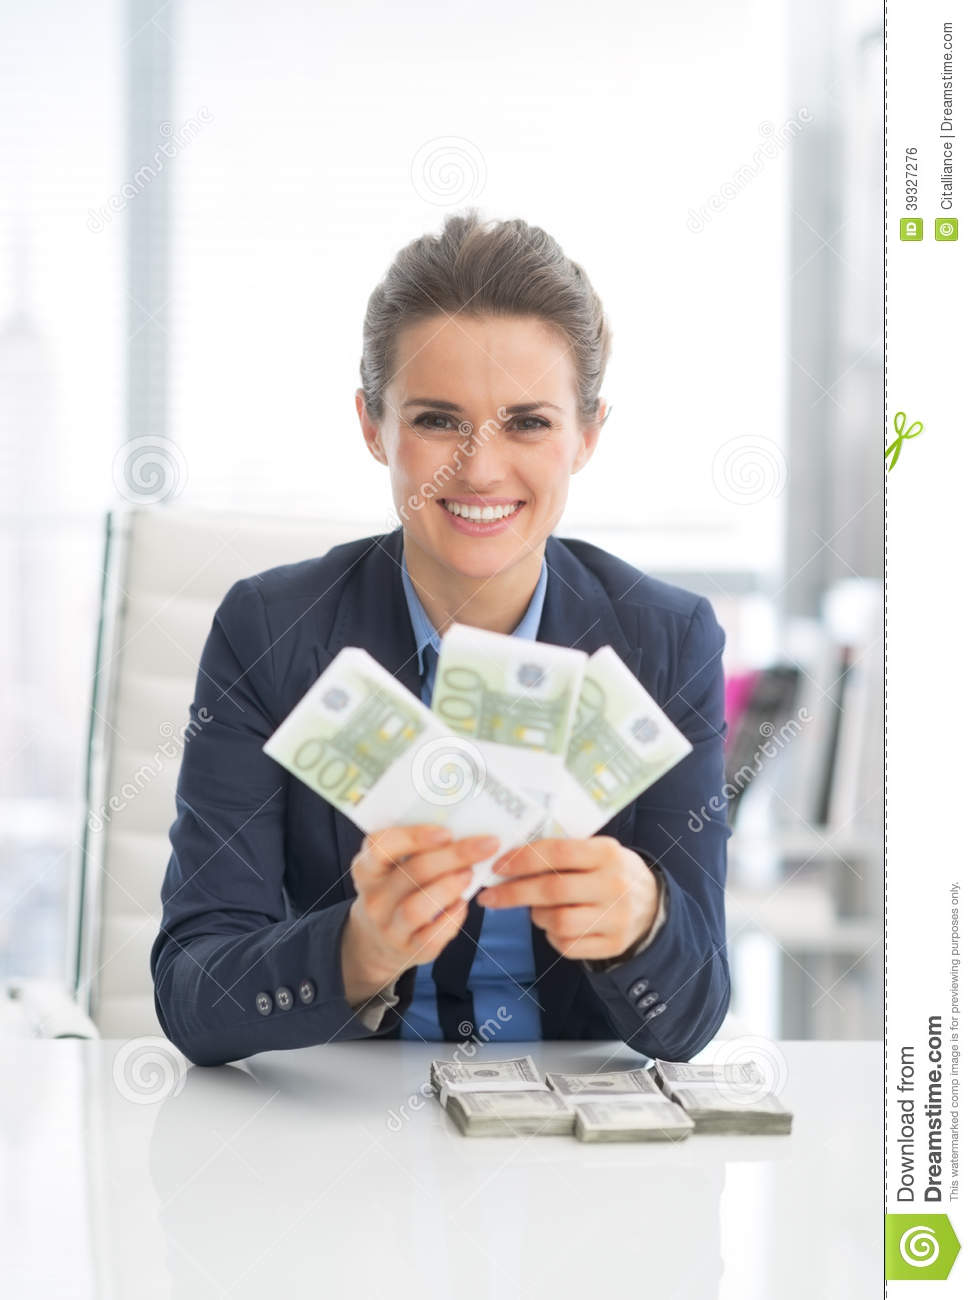 Smiling Business Woman Showing Money Packs Stock Photo ...